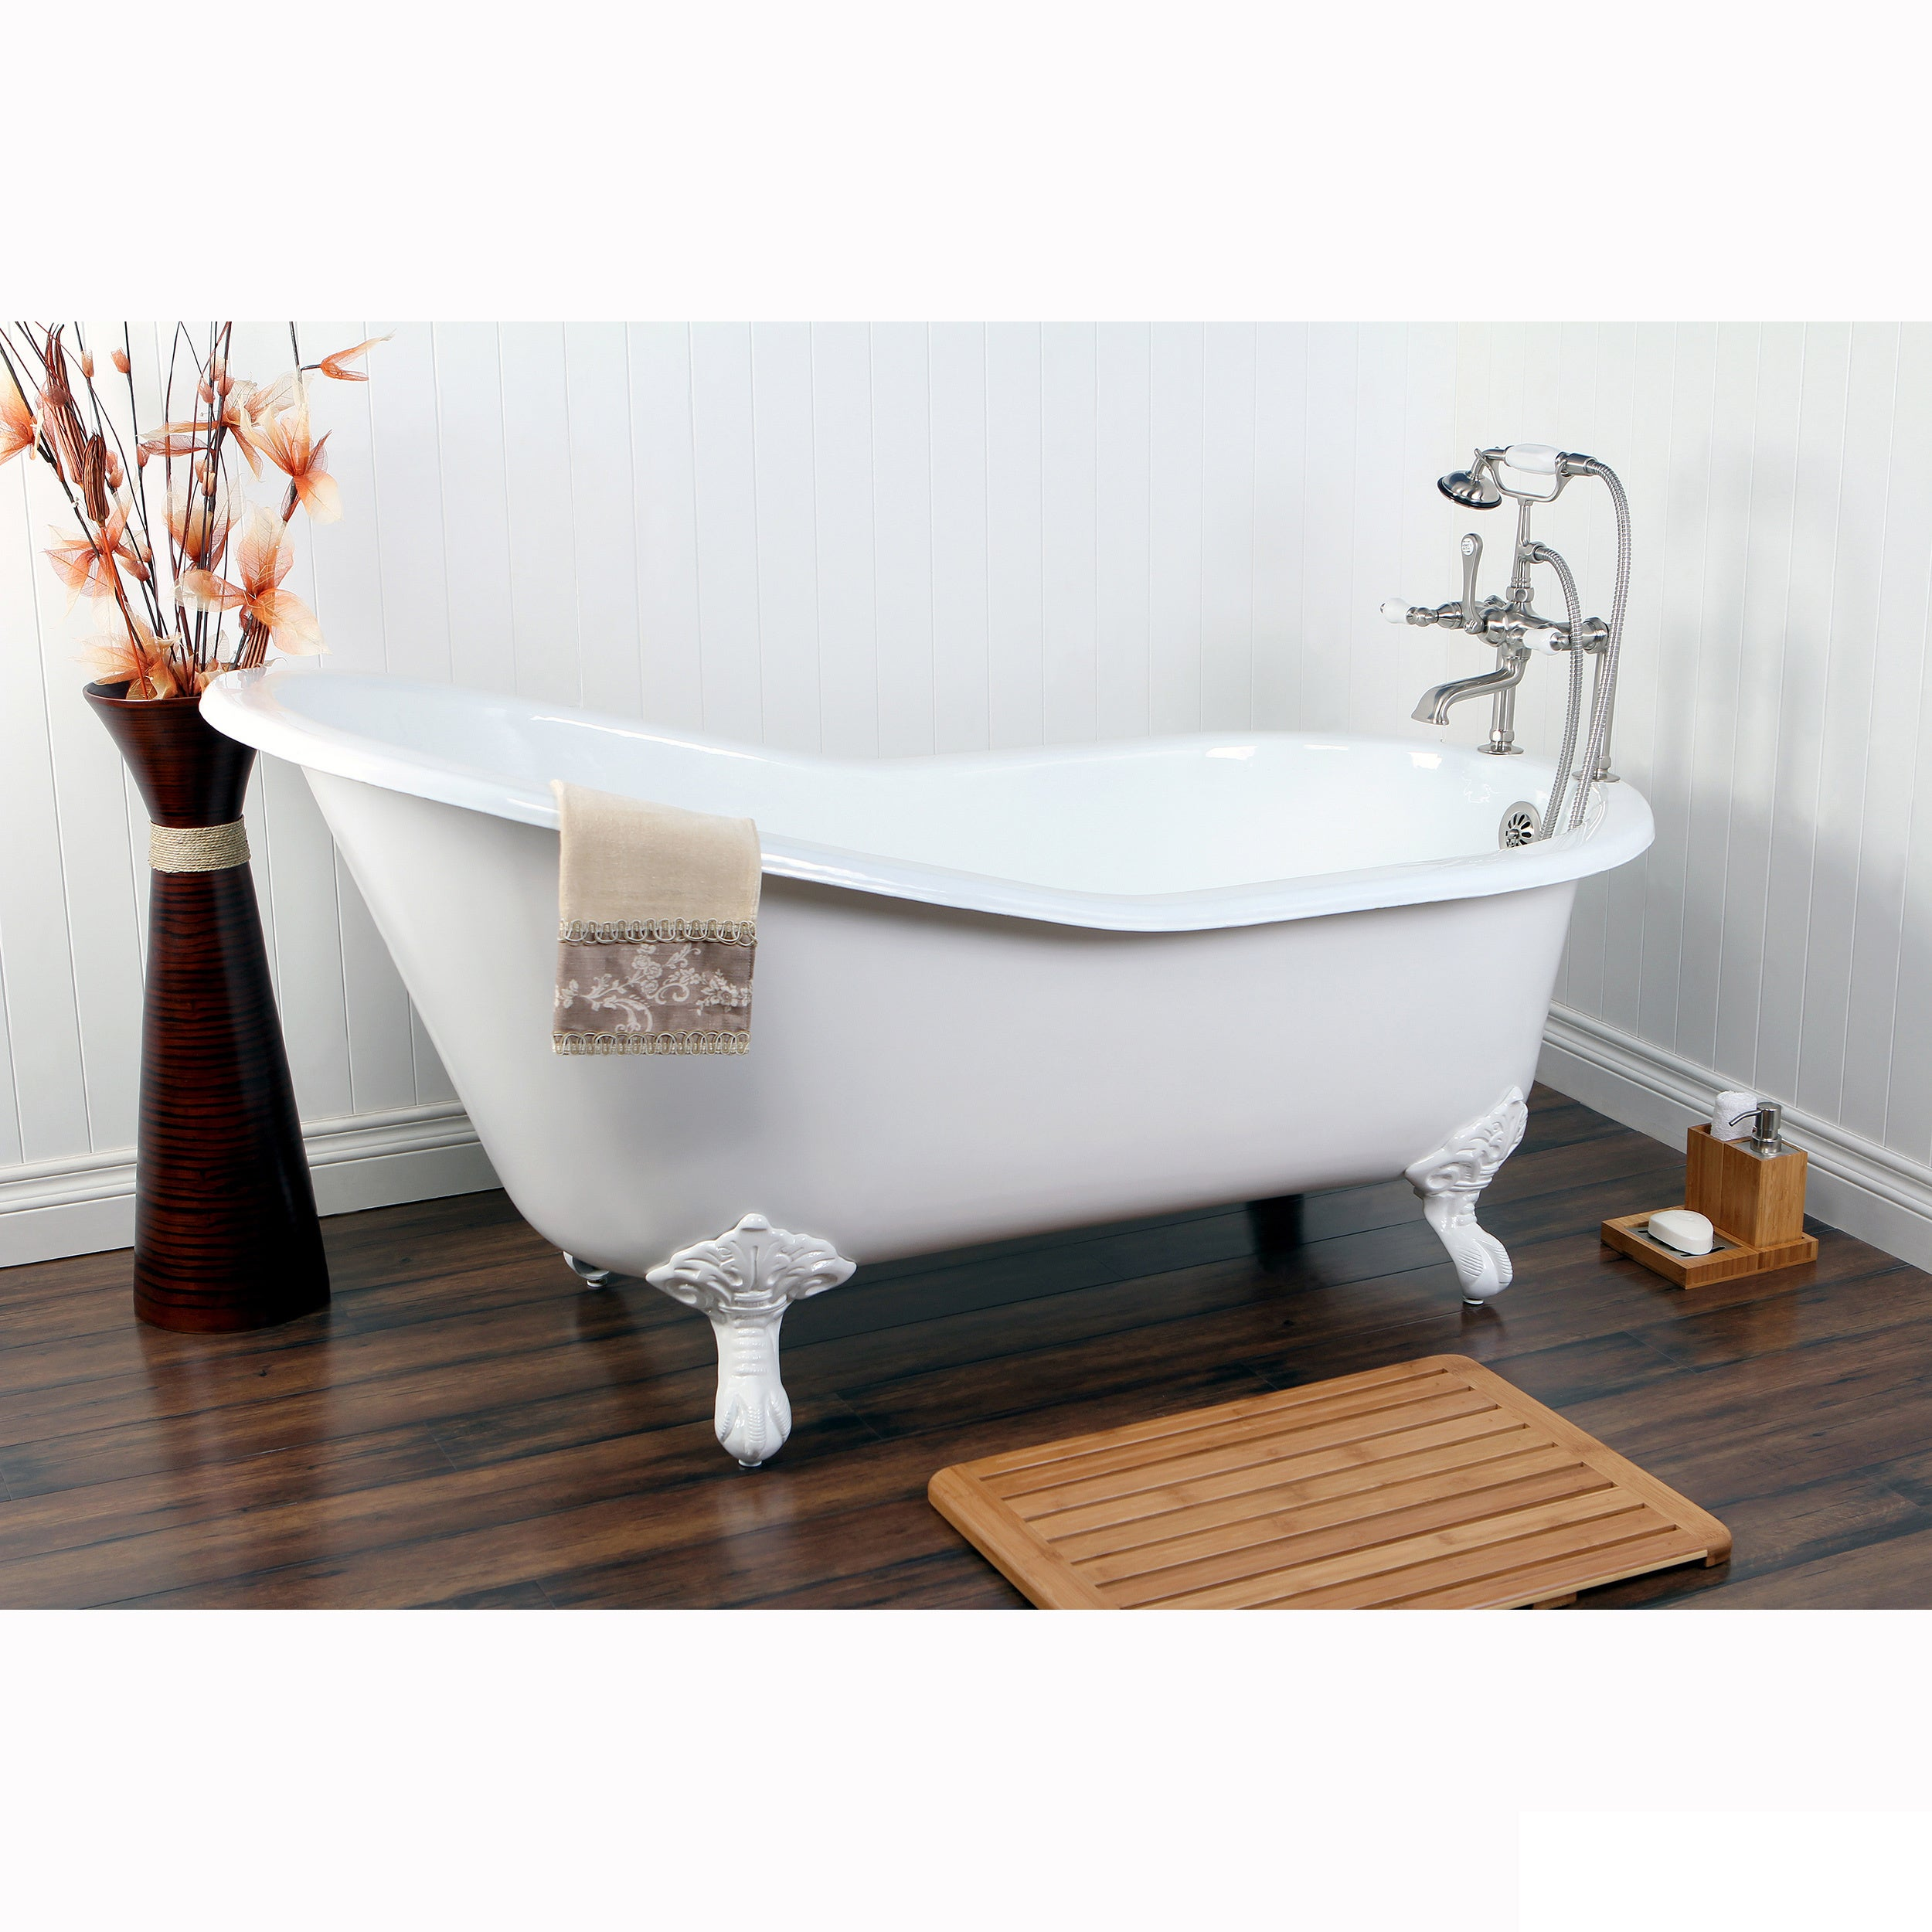 Picture of: Shop Black Friday Deals On Vintage Slipper 61 Inch Cast Iron Clawfoot Tub With 7 Inch Drillings Overstock 5651624